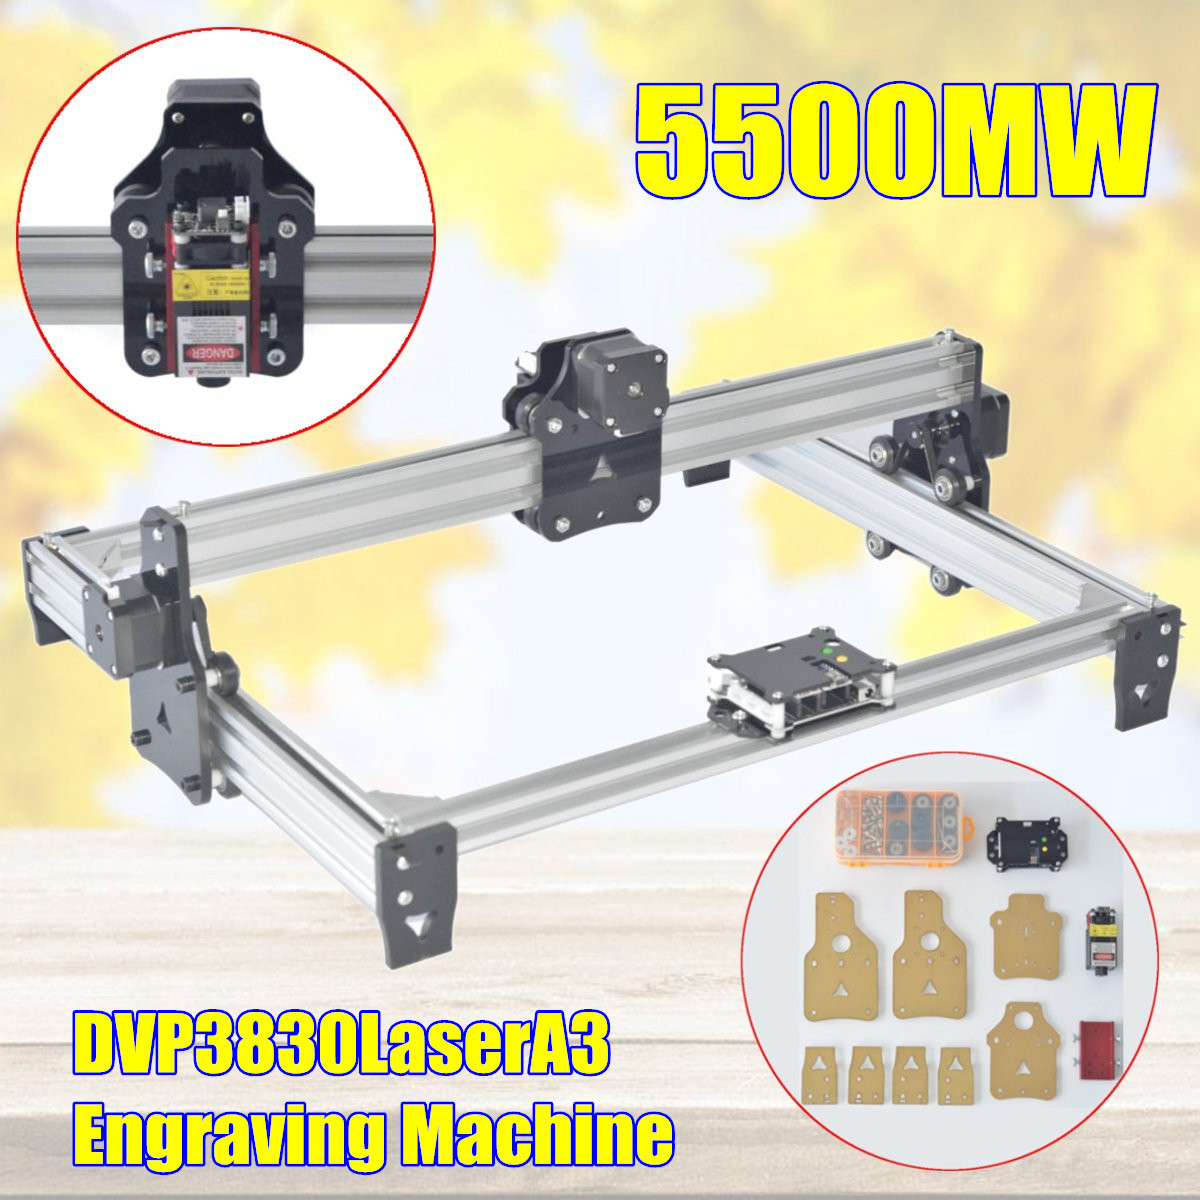 5500mw DVP 3830 Laser A3 Engraving Machine,DIY Laser Engraver Machine,Wood Router,laser cutter,cnc router,Woodworking Machinery бра ambiente lugo 8539 2 wp page 7 page 8 page 3 page 6 page 8